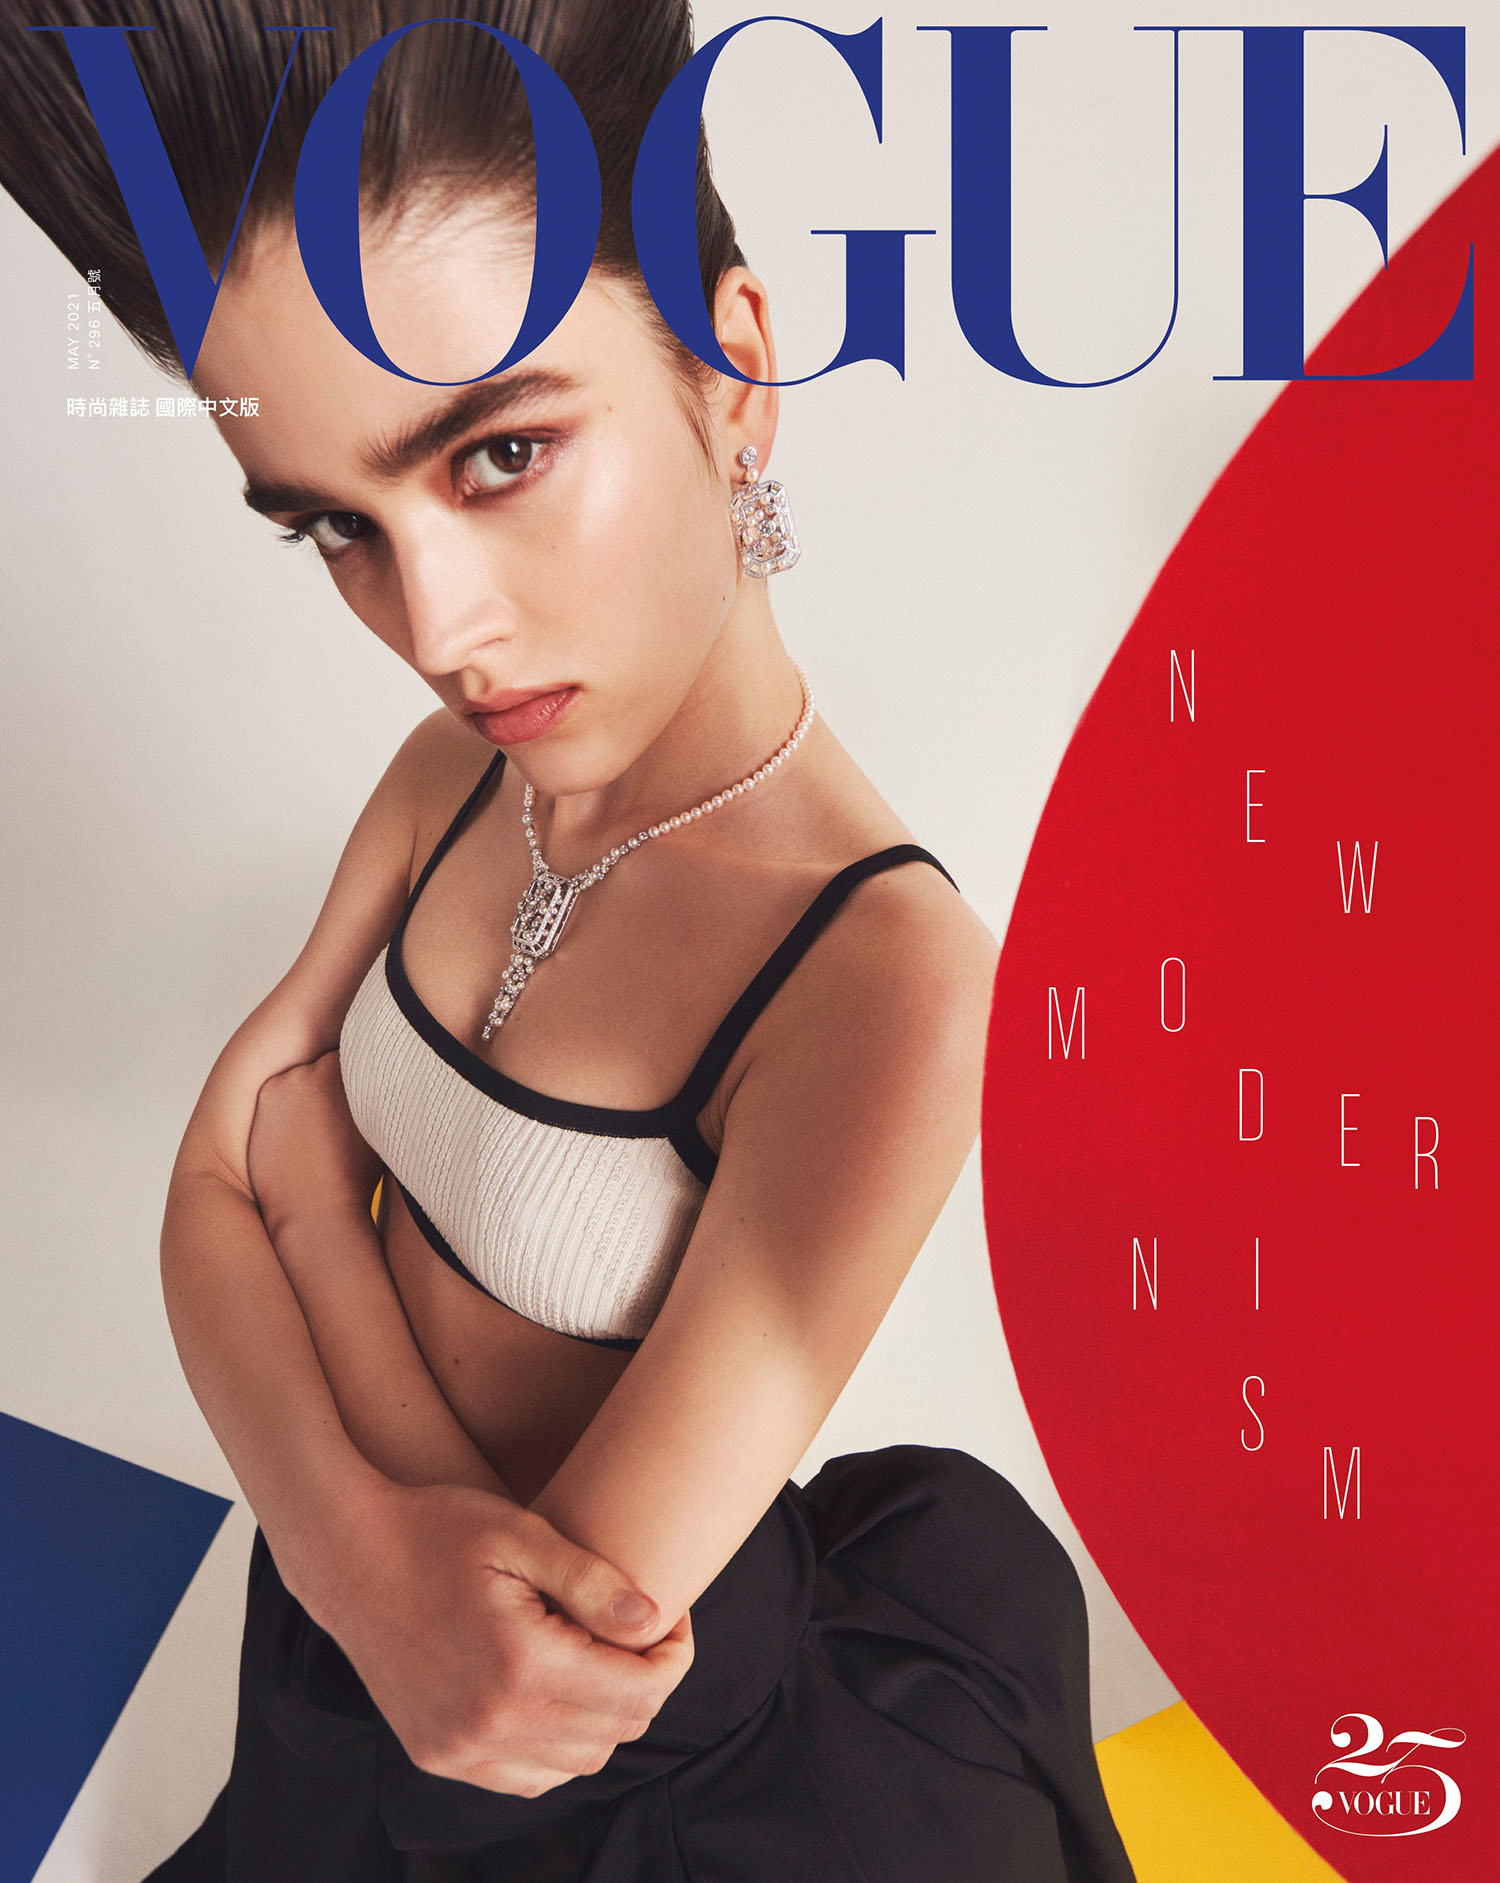 Alexandra Micu covers Vogue Taiwan May 2021 by Julien Vallon